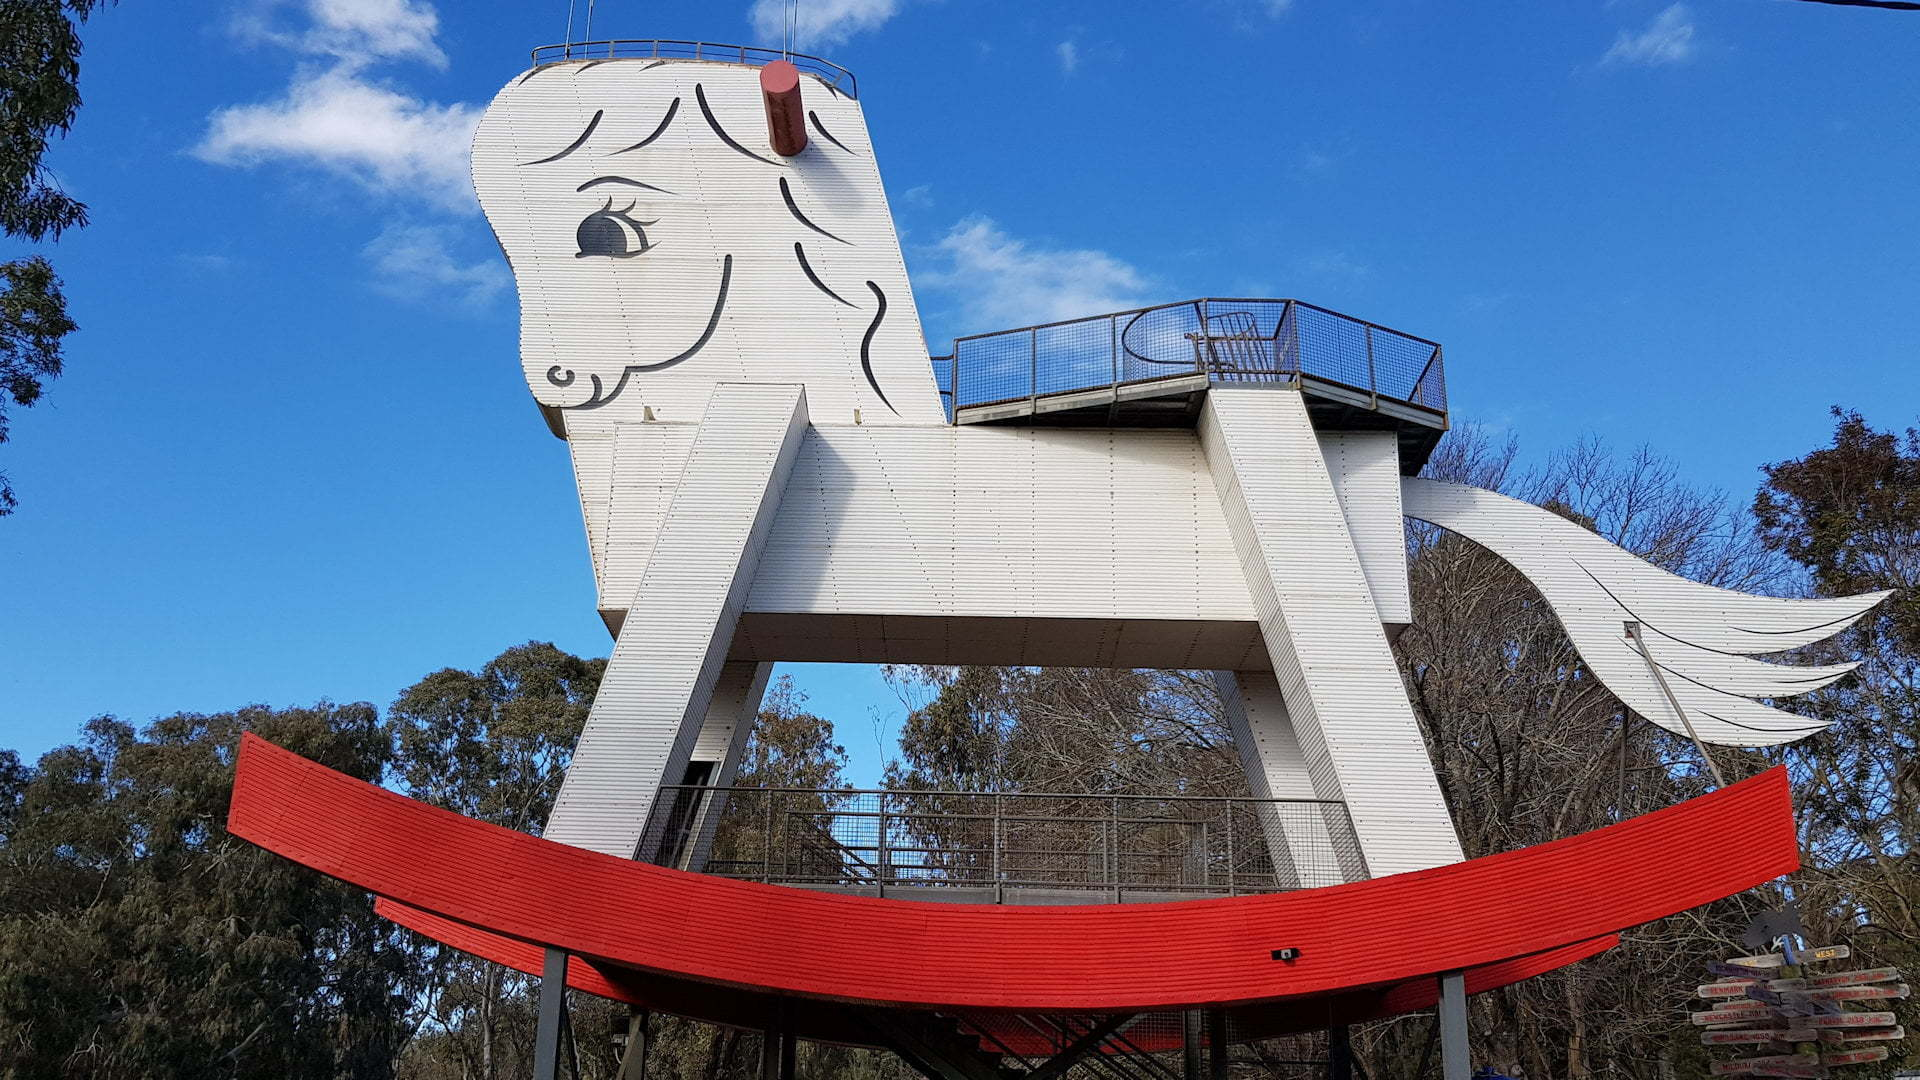 Big Rocking Horse at Gumeracha in the Adelaide Hills